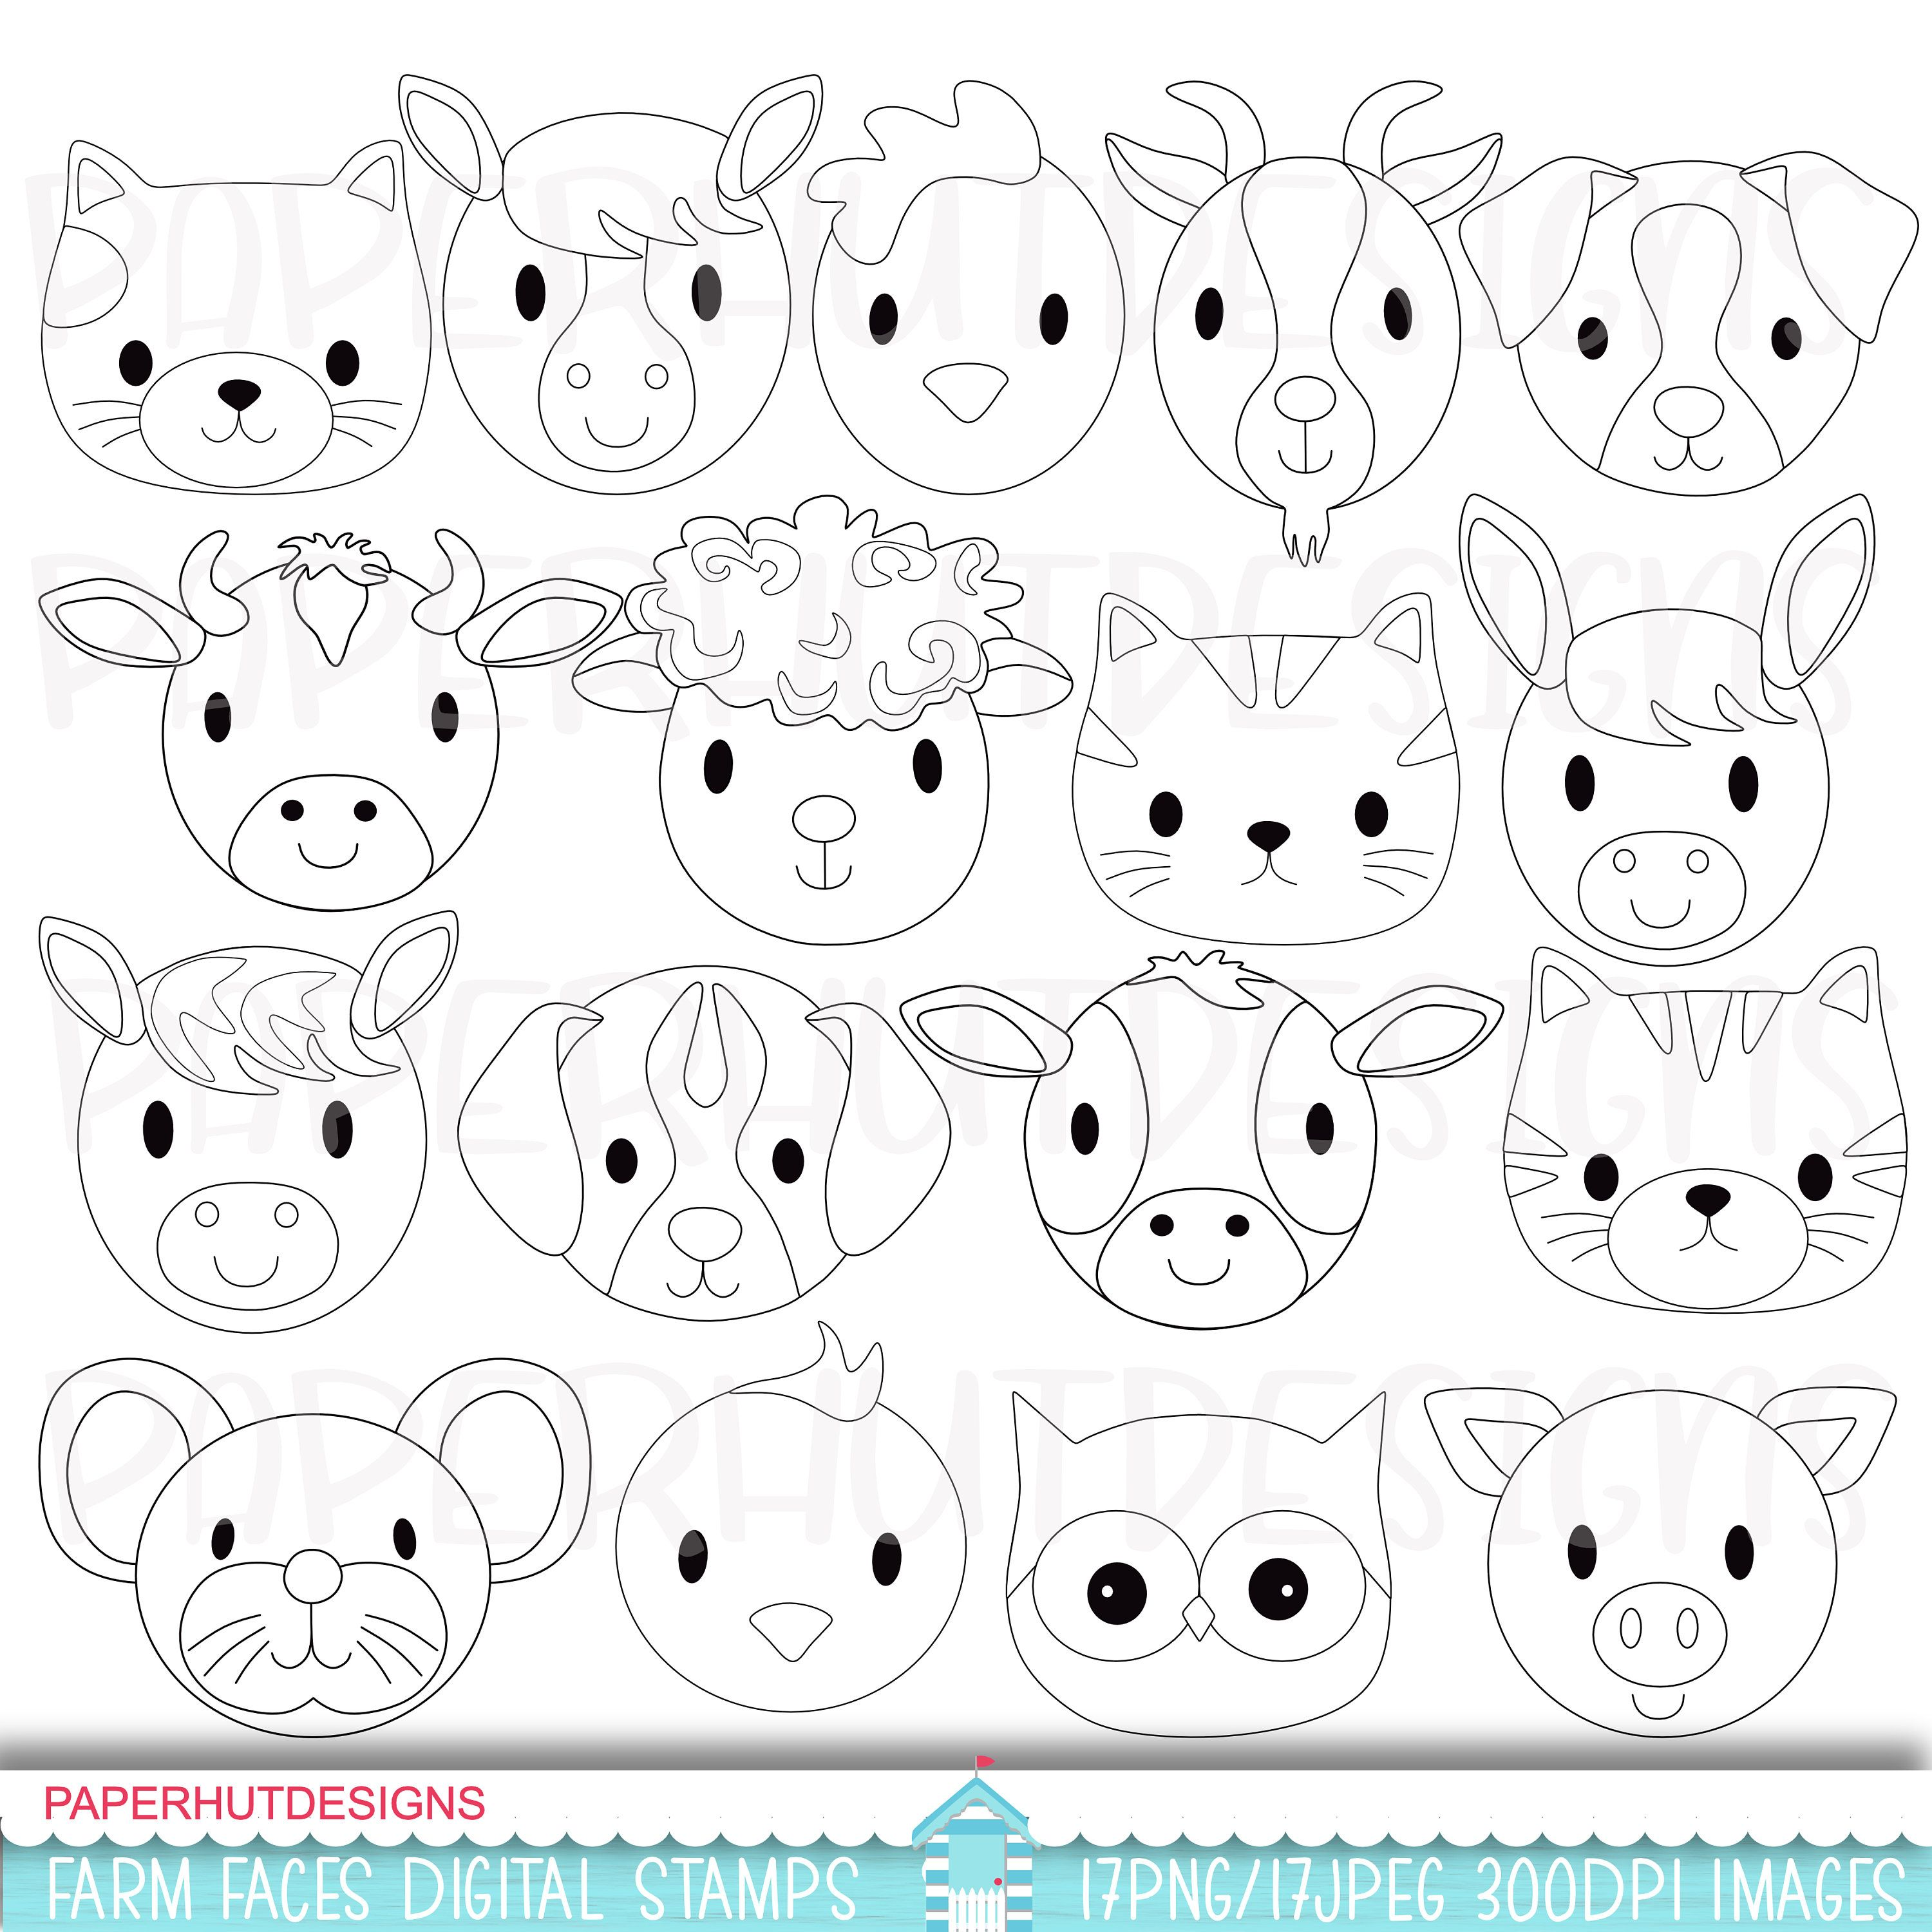 Farm Animals Digital Stamp Farm Animal Faces Black And White Etsy Animal Coloring Pages Digital Stamps Coloring Pages